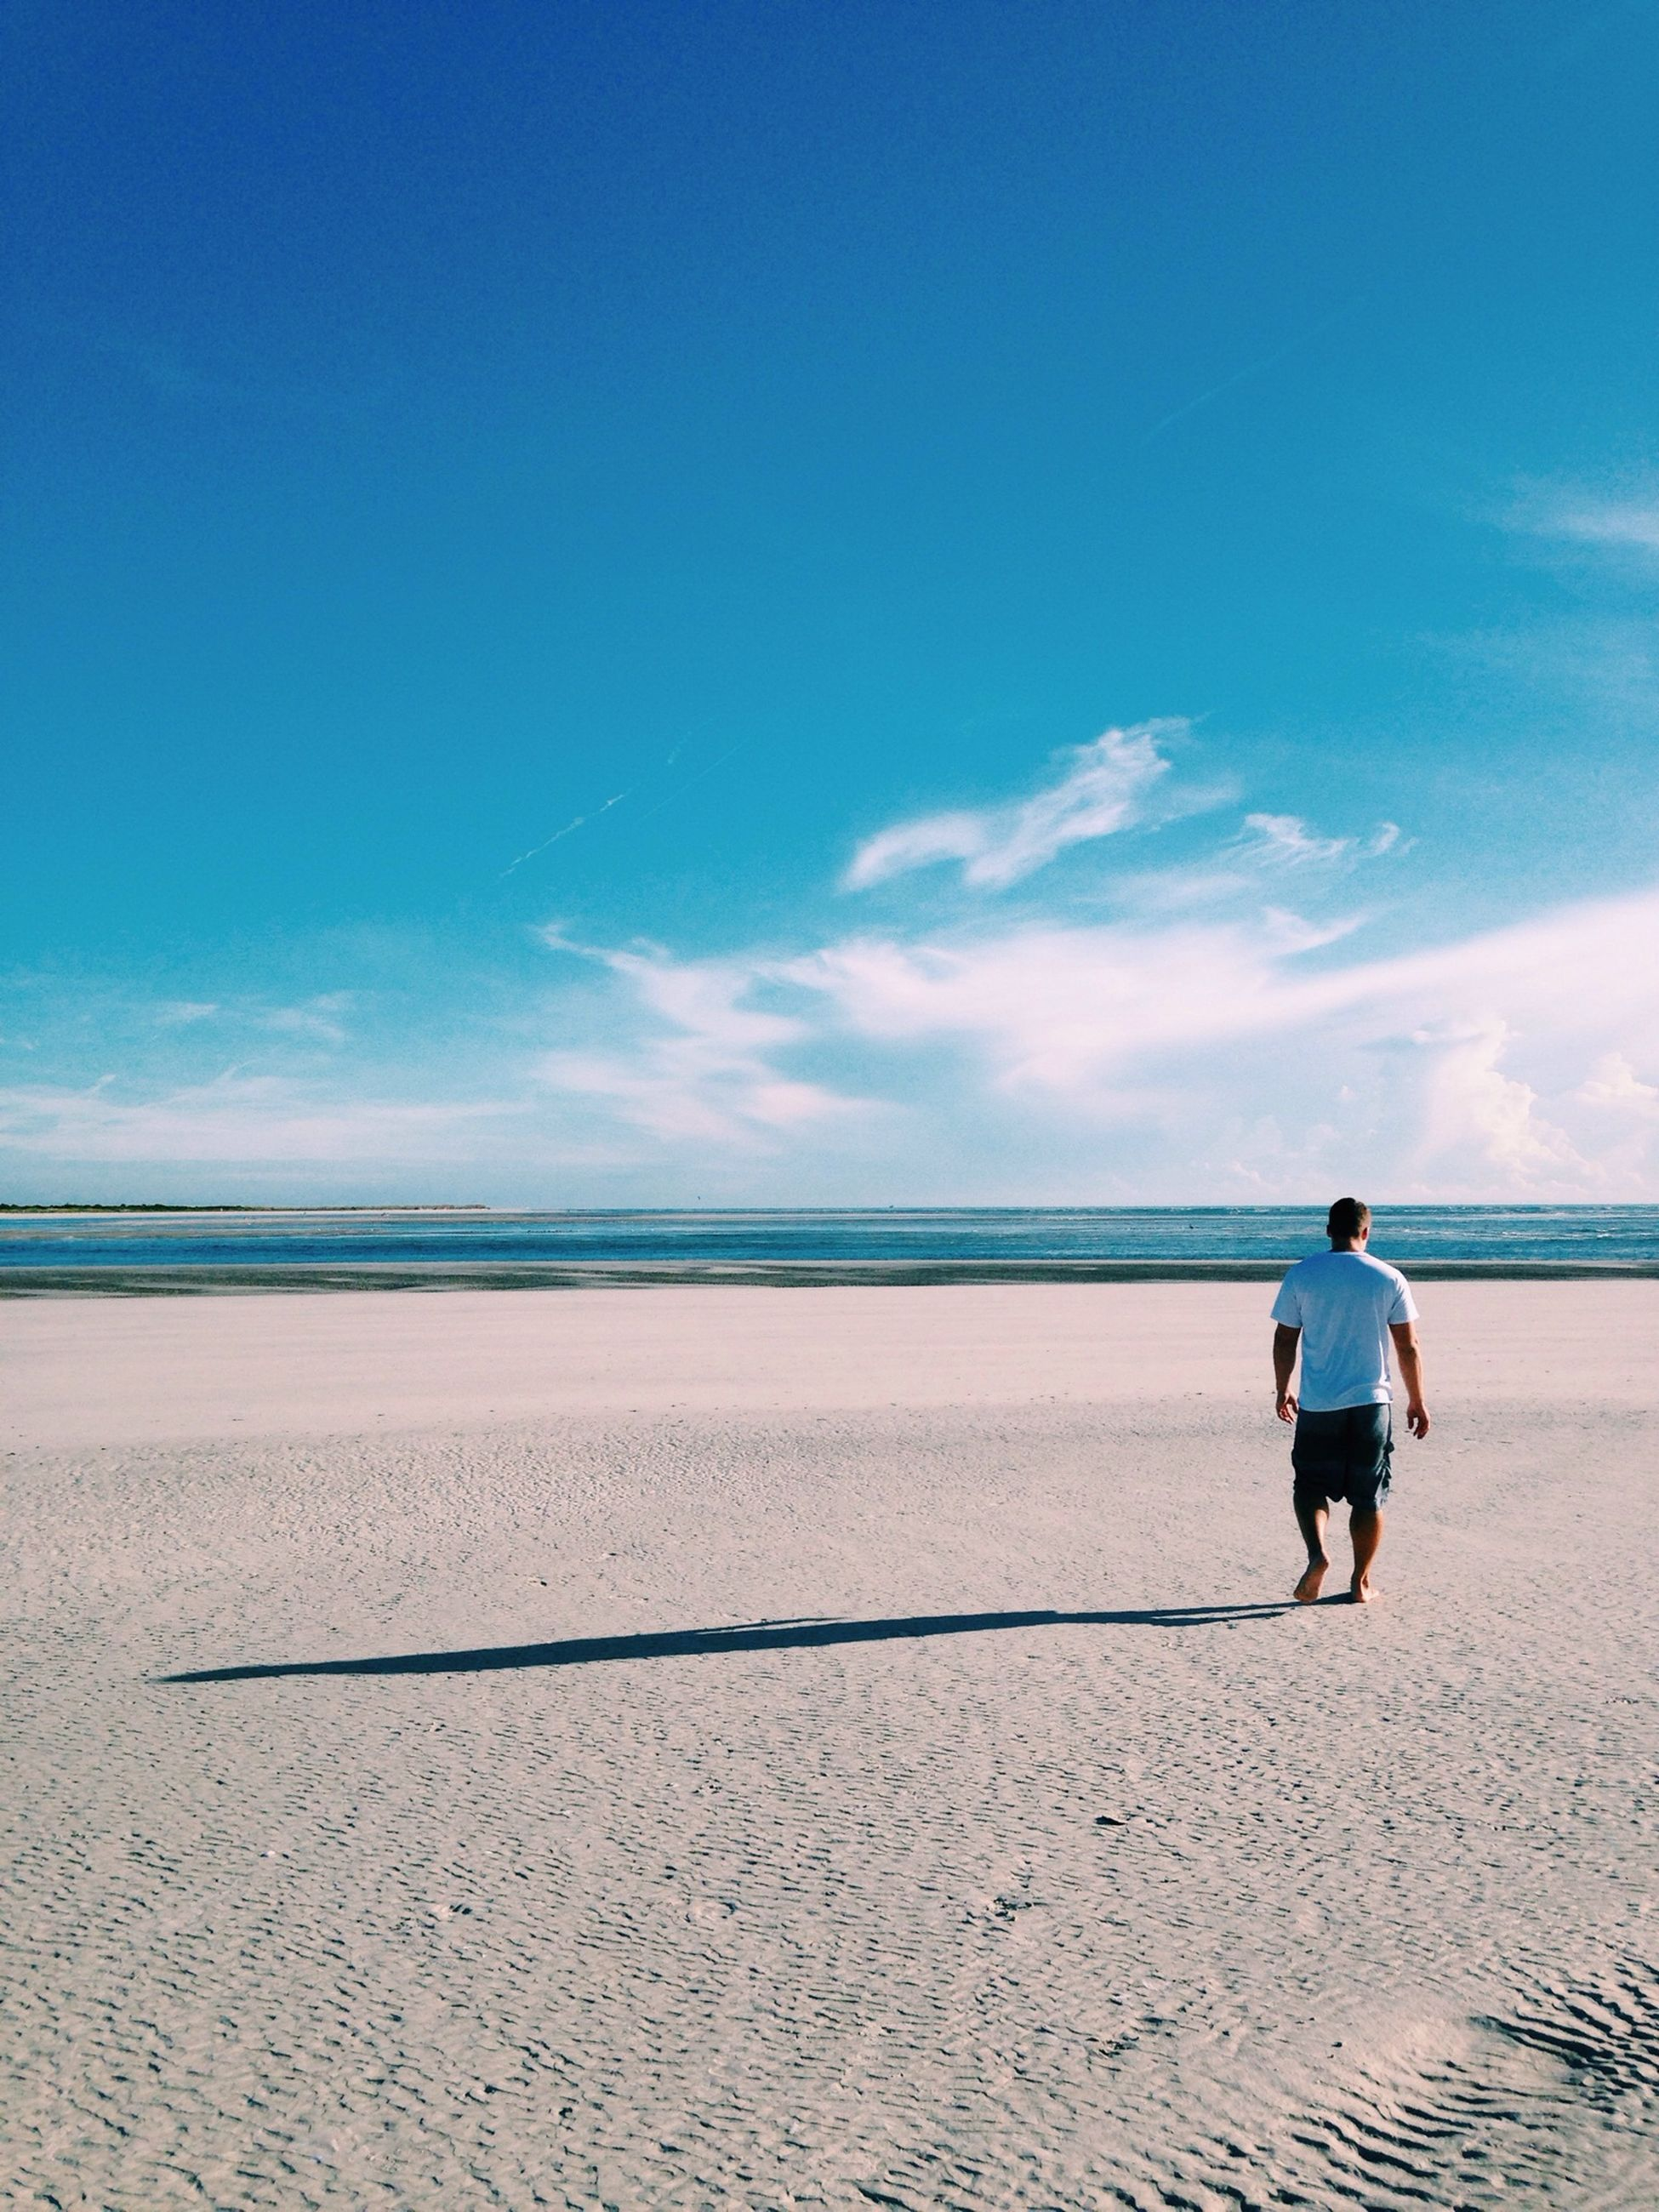 beach, sand, sky, sea, full length, blue, horizon over water, water, shore, tranquility, leisure activity, rear view, tranquil scene, lifestyles, cloud, scenics, beauty in nature, men